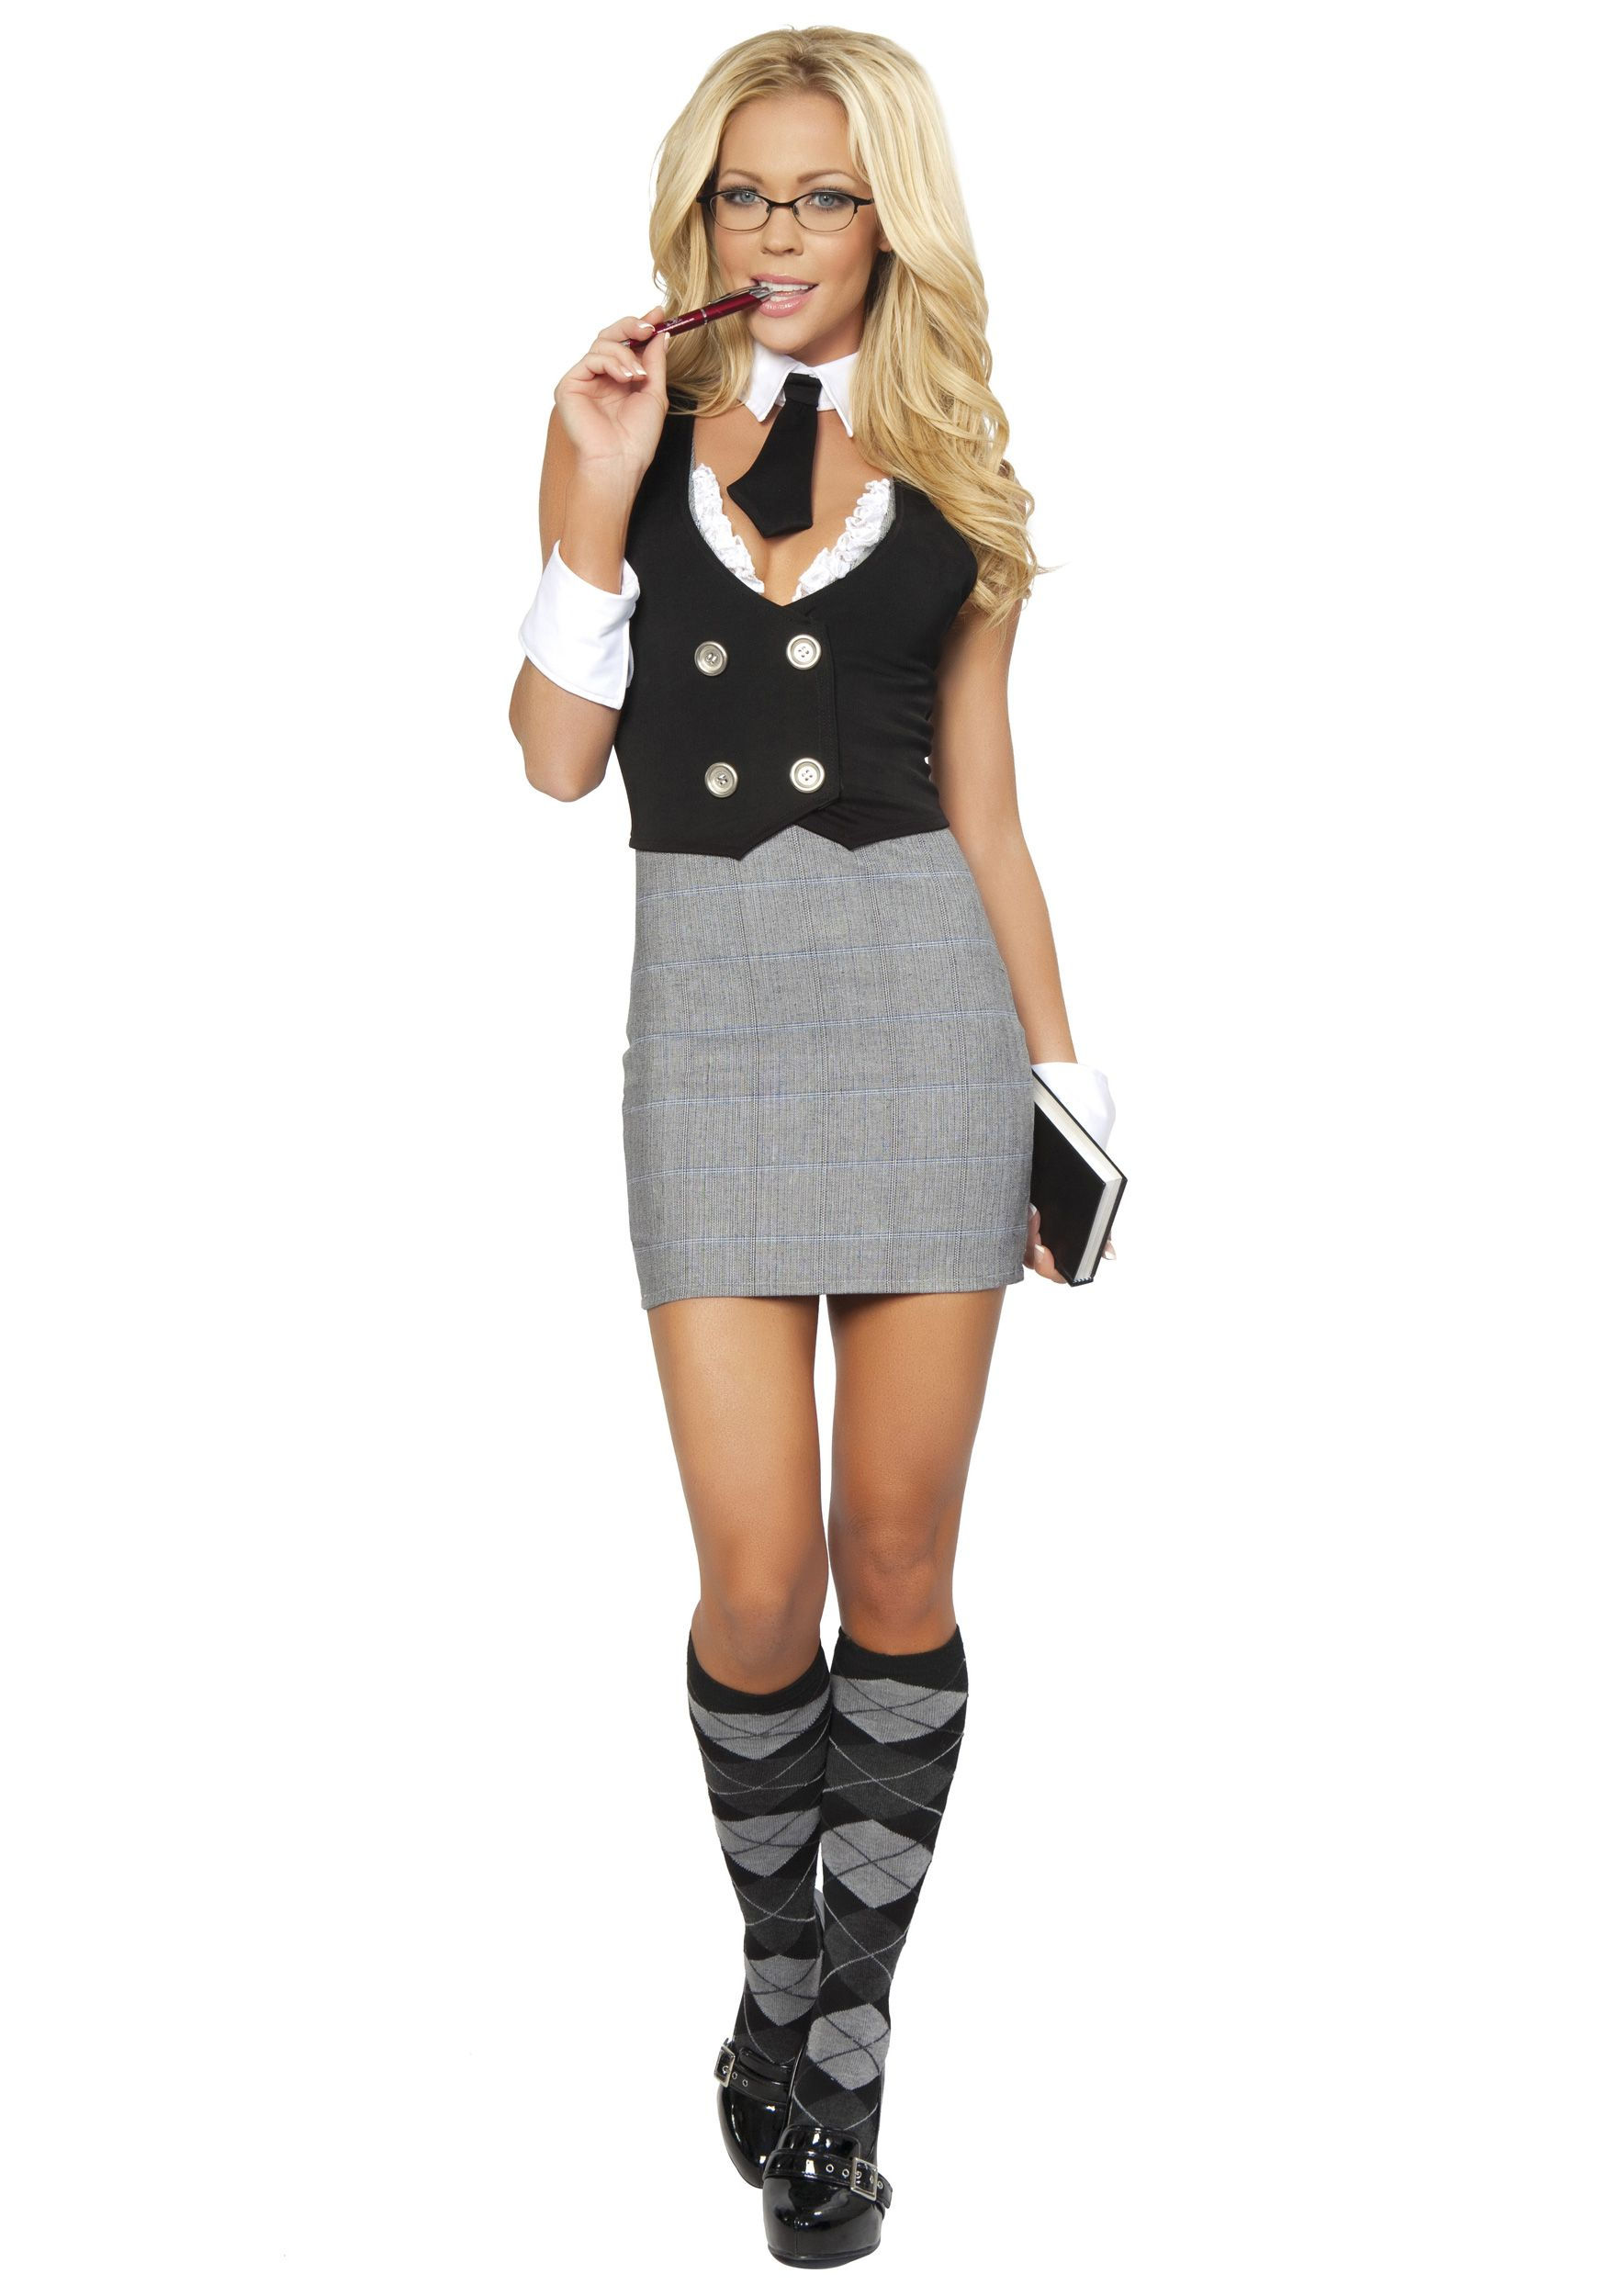 Sexy School Teacher Costume | Costumes, Halloween costumes and ...